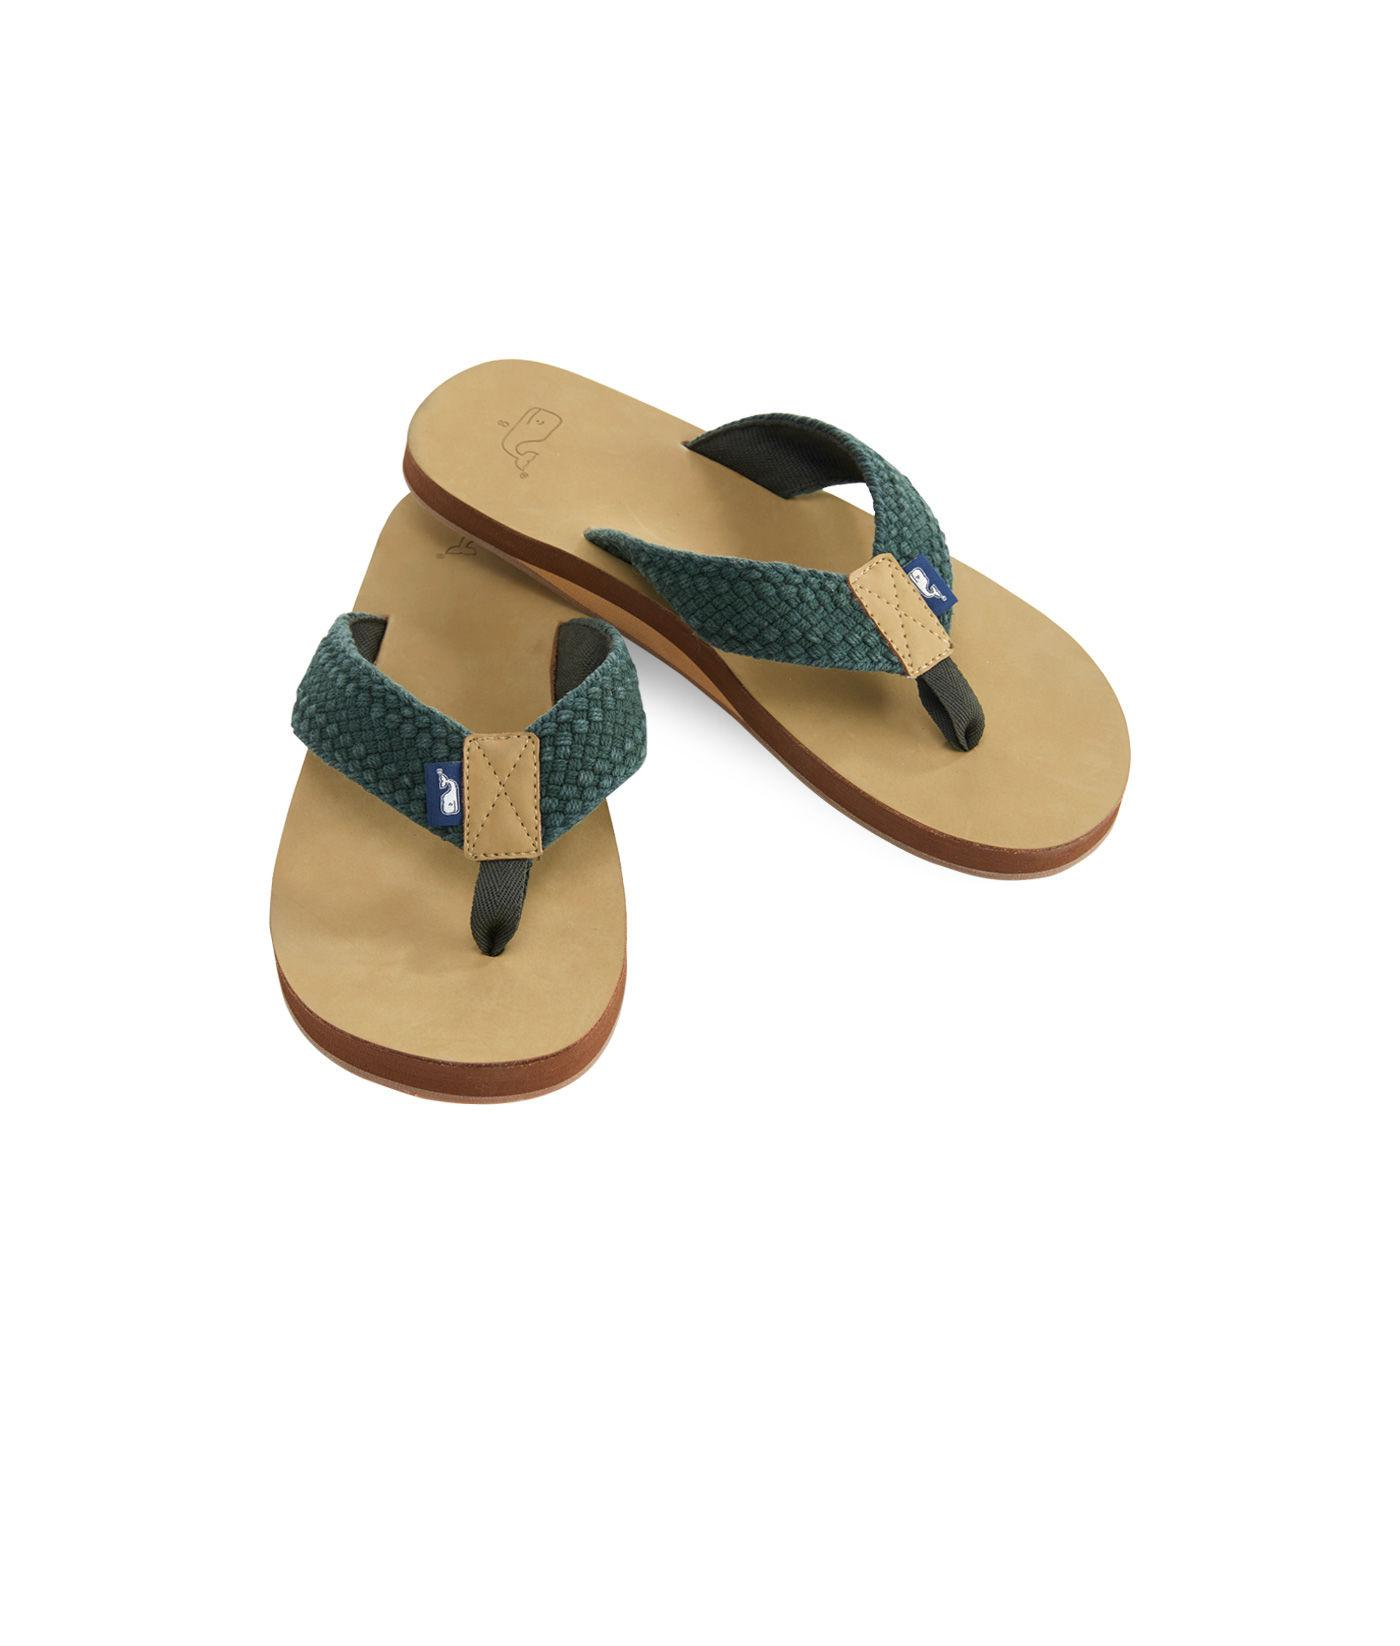 31ae336da3e77f Lyst - Vineyard Vines Leather Flip Flops With Washed Webbing in ...